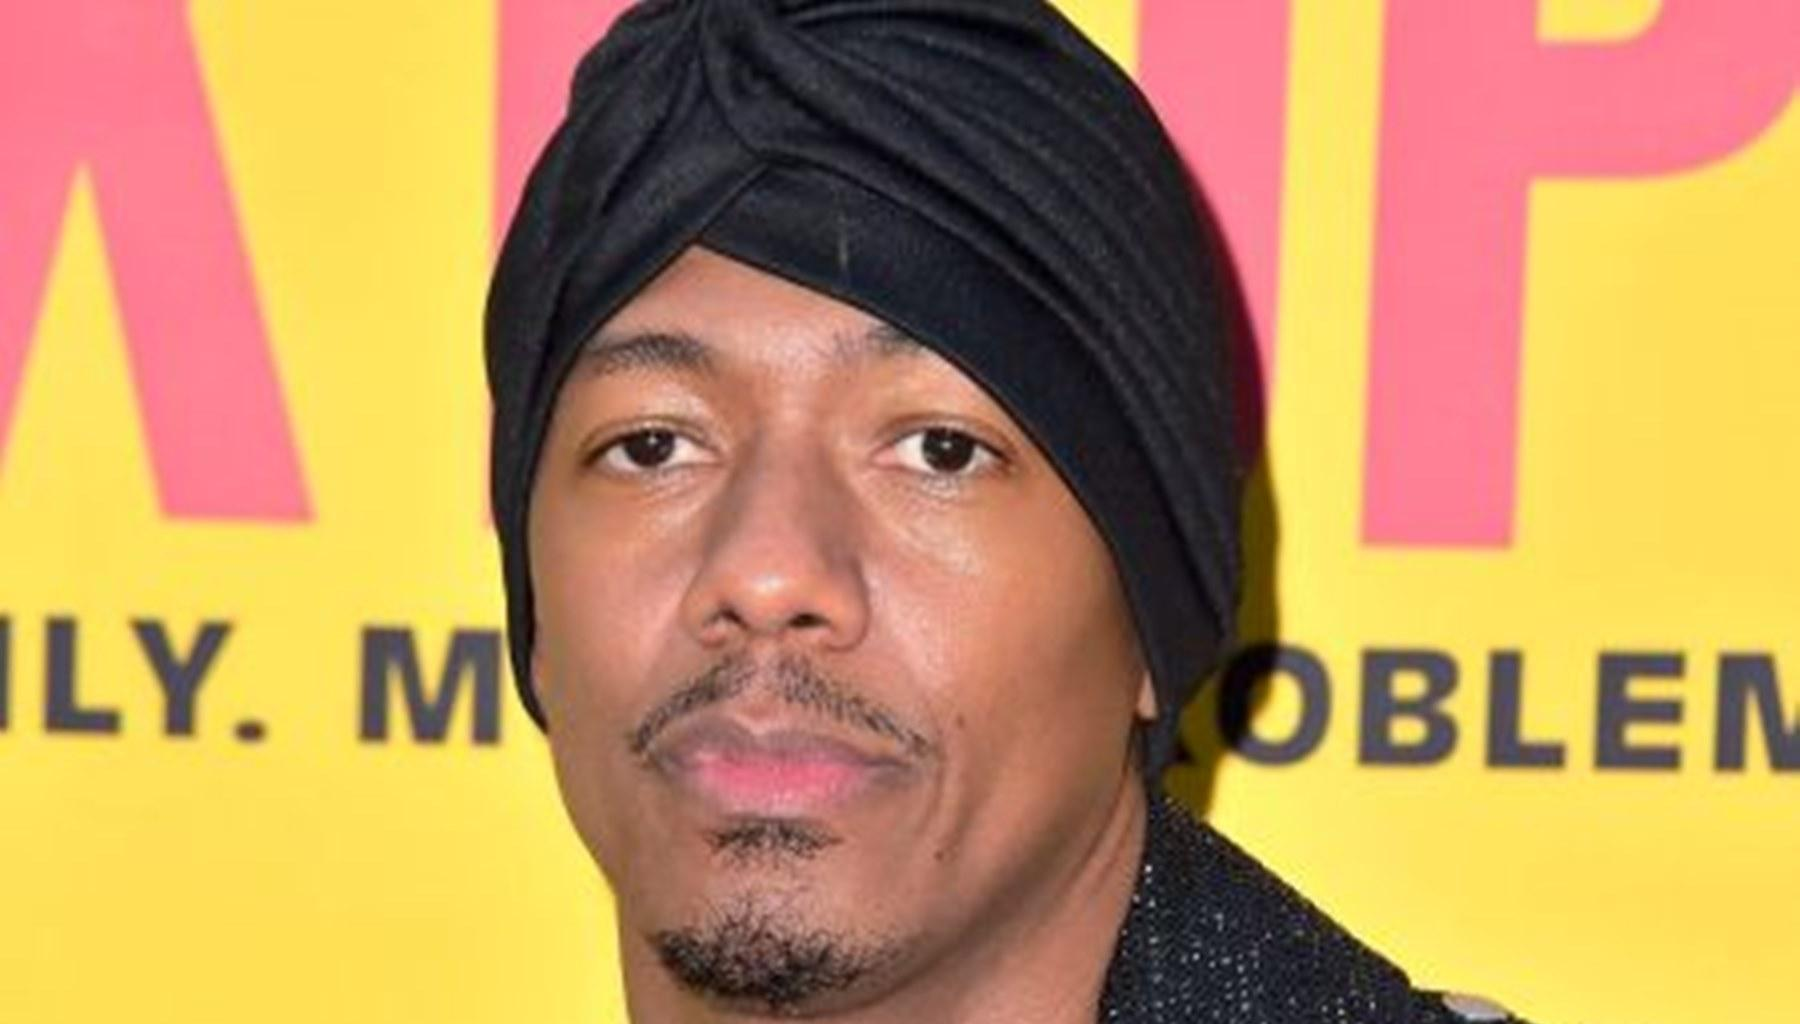 Concerned Nick Cannon Fans Reach Out To Him After He Shared This Scary Message